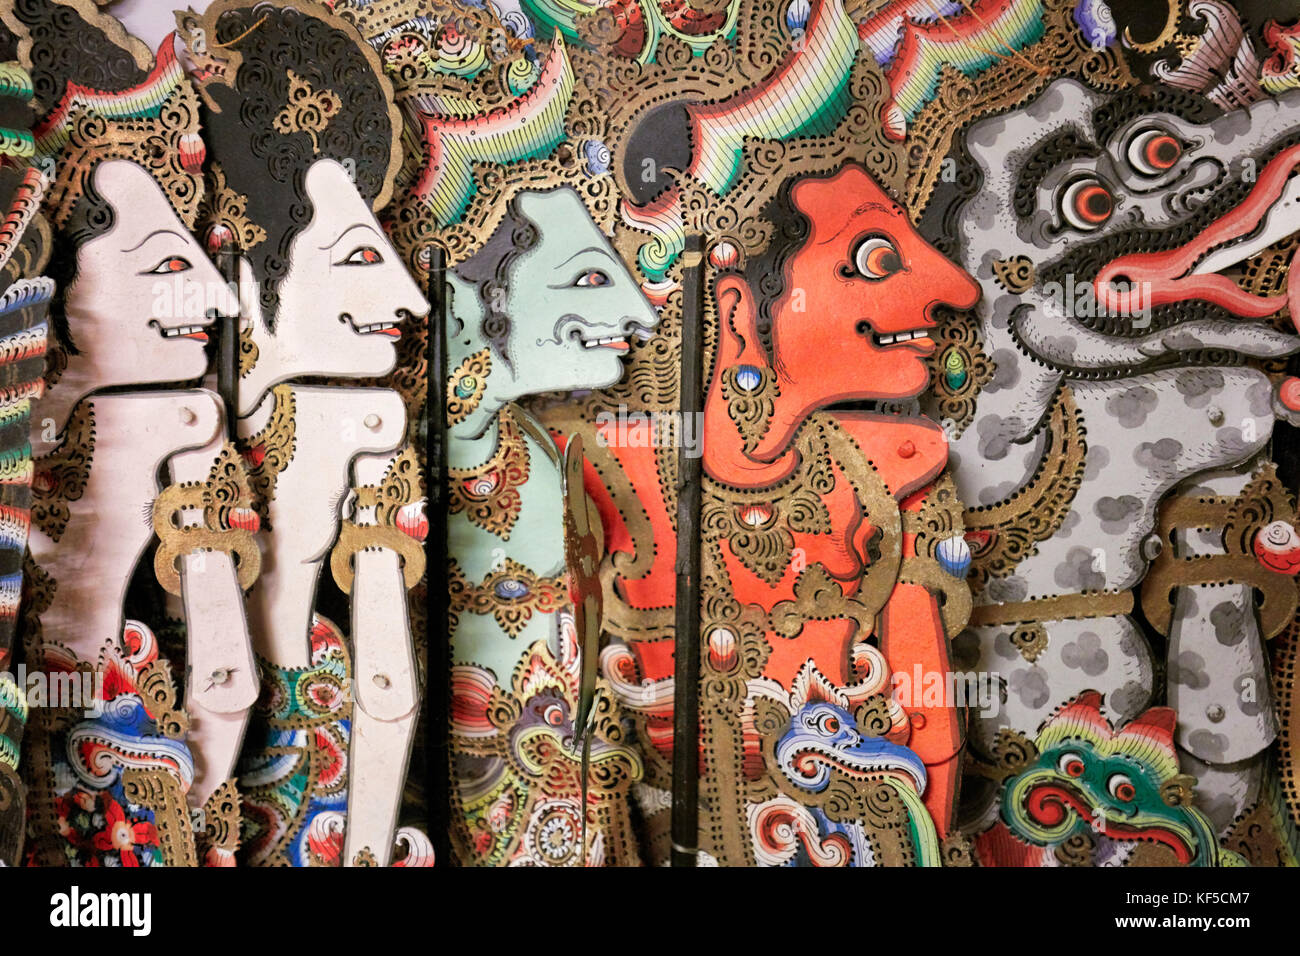 Balinese Shadow Puppets for Mahabharata performance. Setia Darma House of Masks and Puppets, Mas, Ubud, Bali, Indonesia. - Stock Image